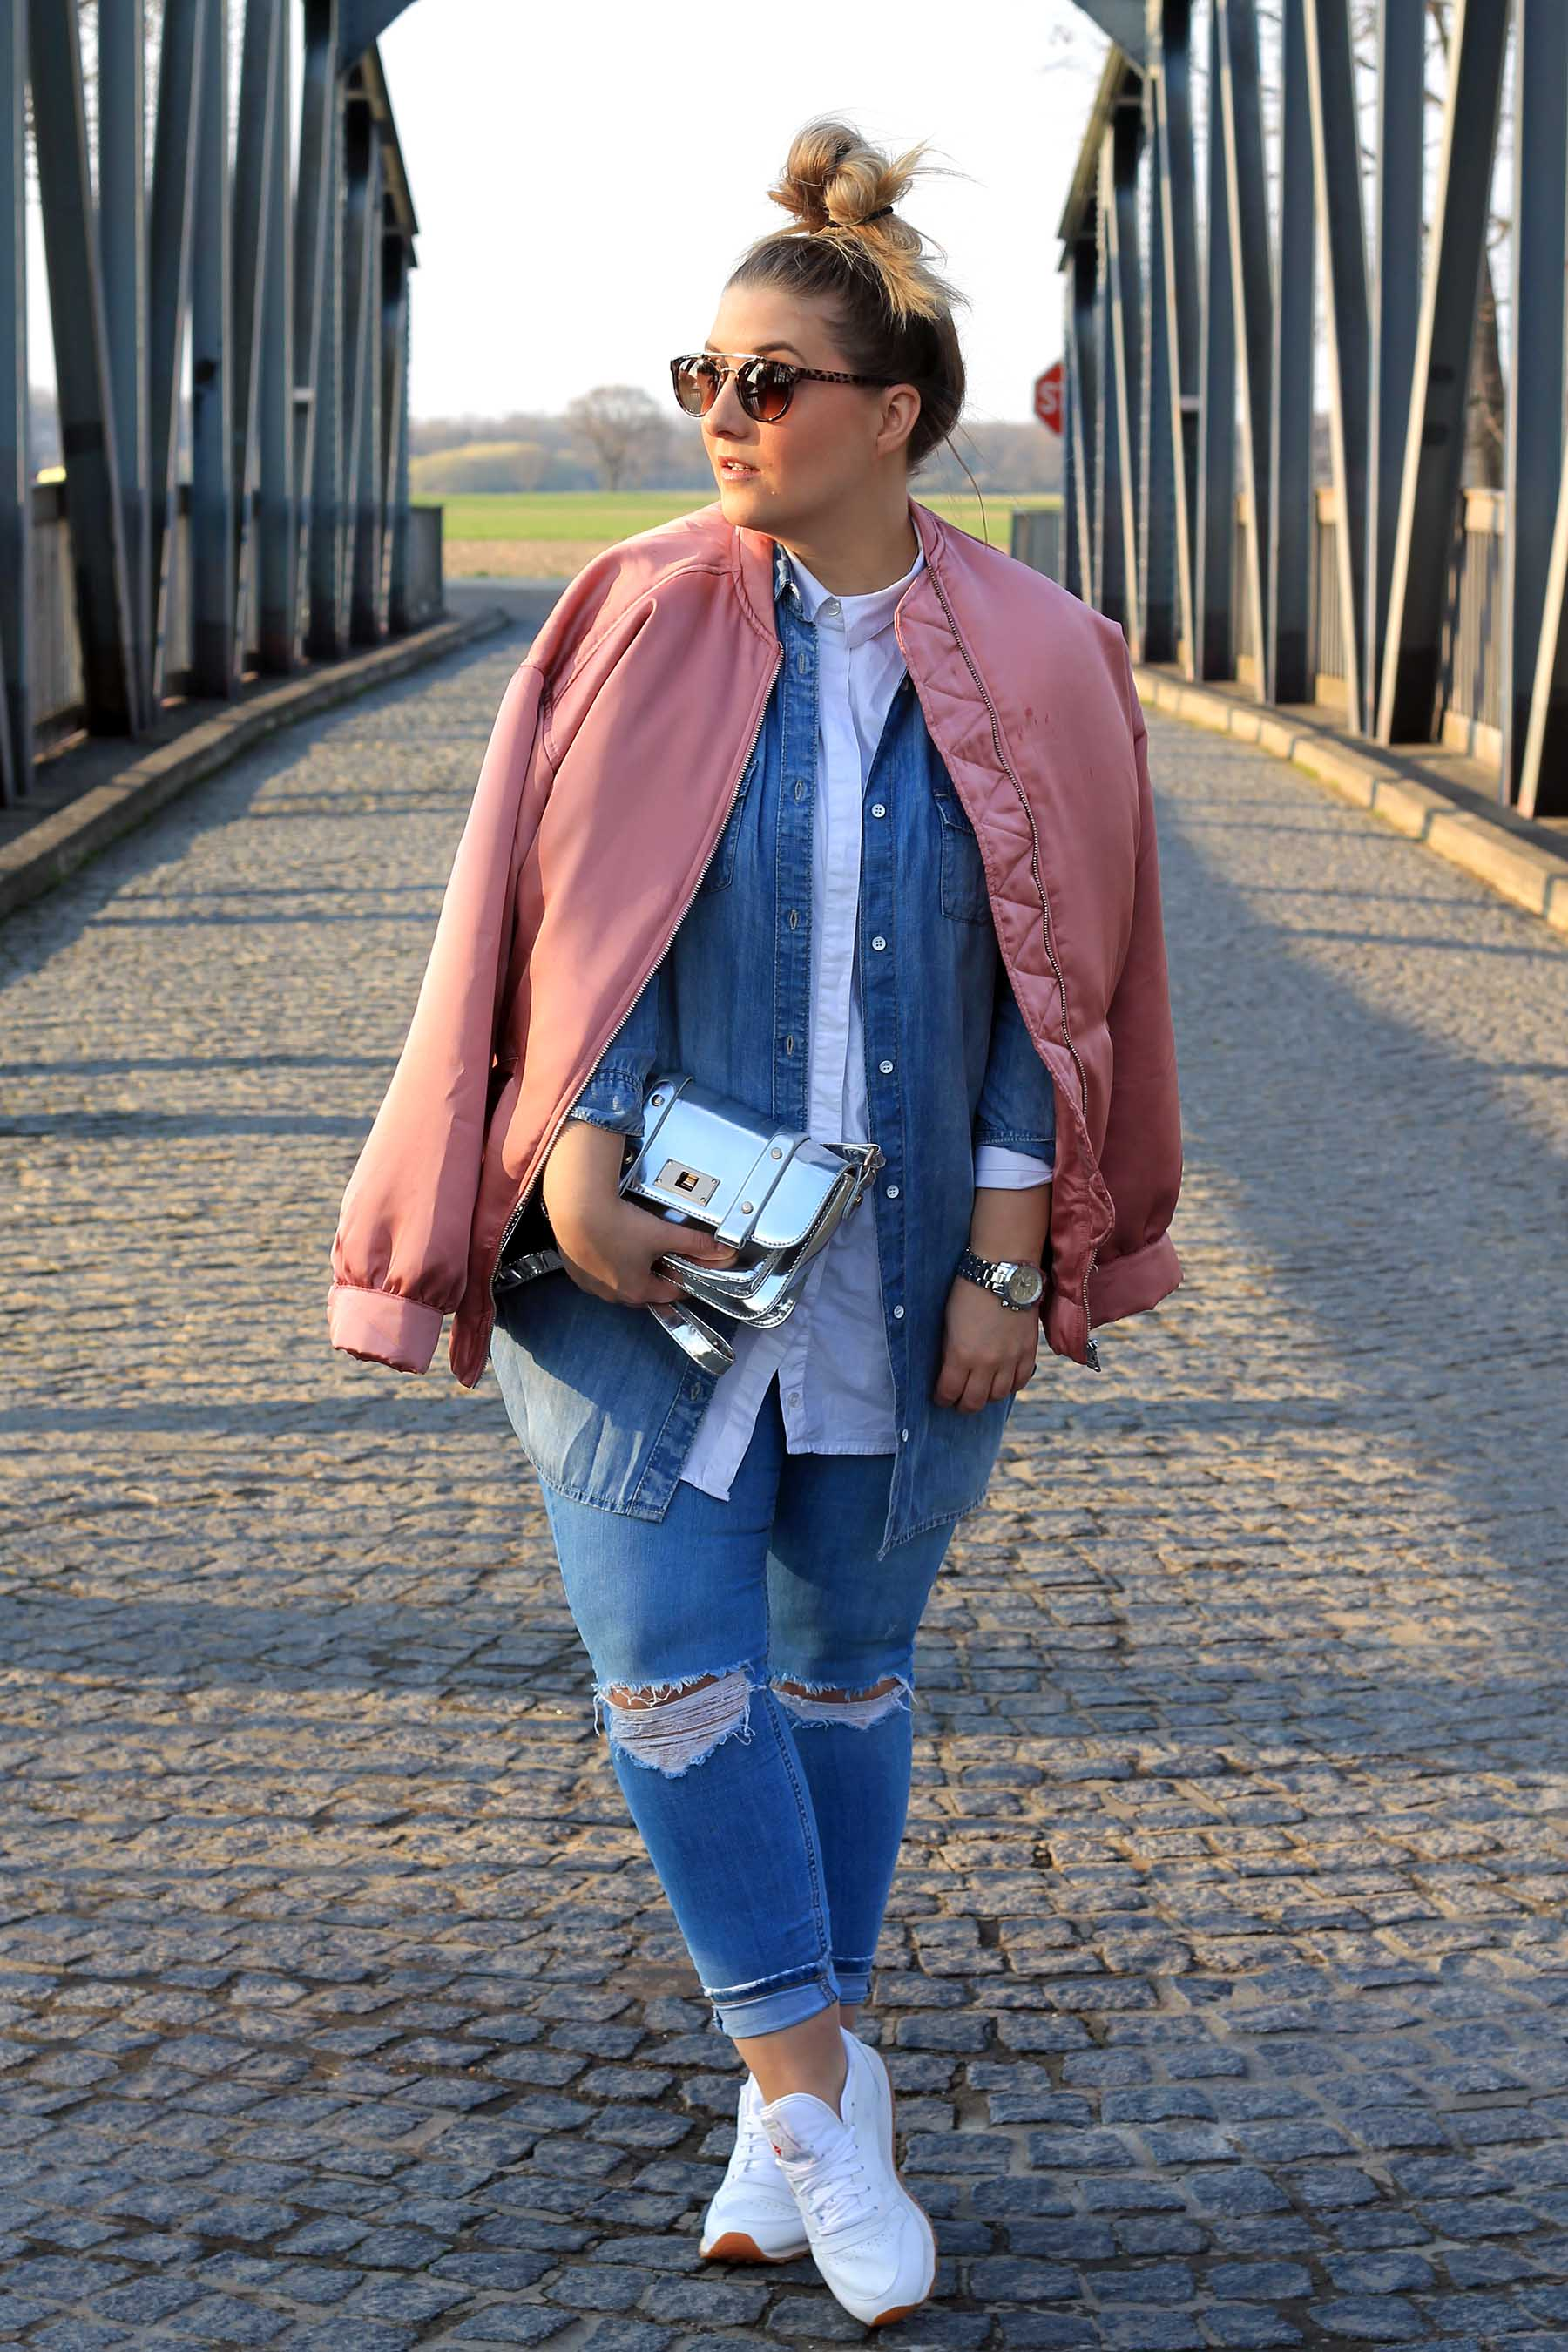 outfit-modeblog-fashionblog-jeans-silberne-tasche-bomberjacke